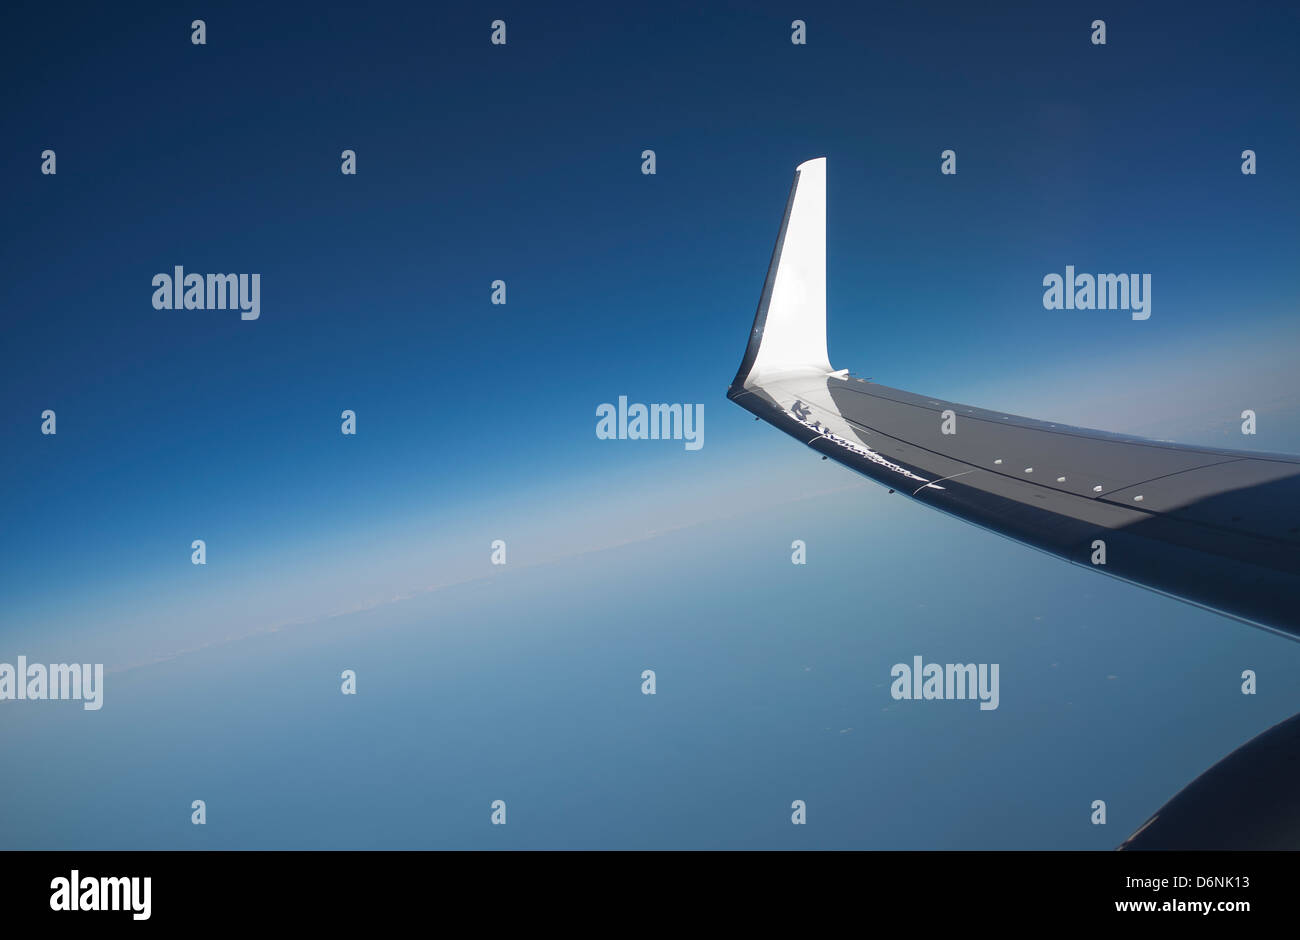 Winglet on a Boeing 737-800 jet aircraft - Stock Image